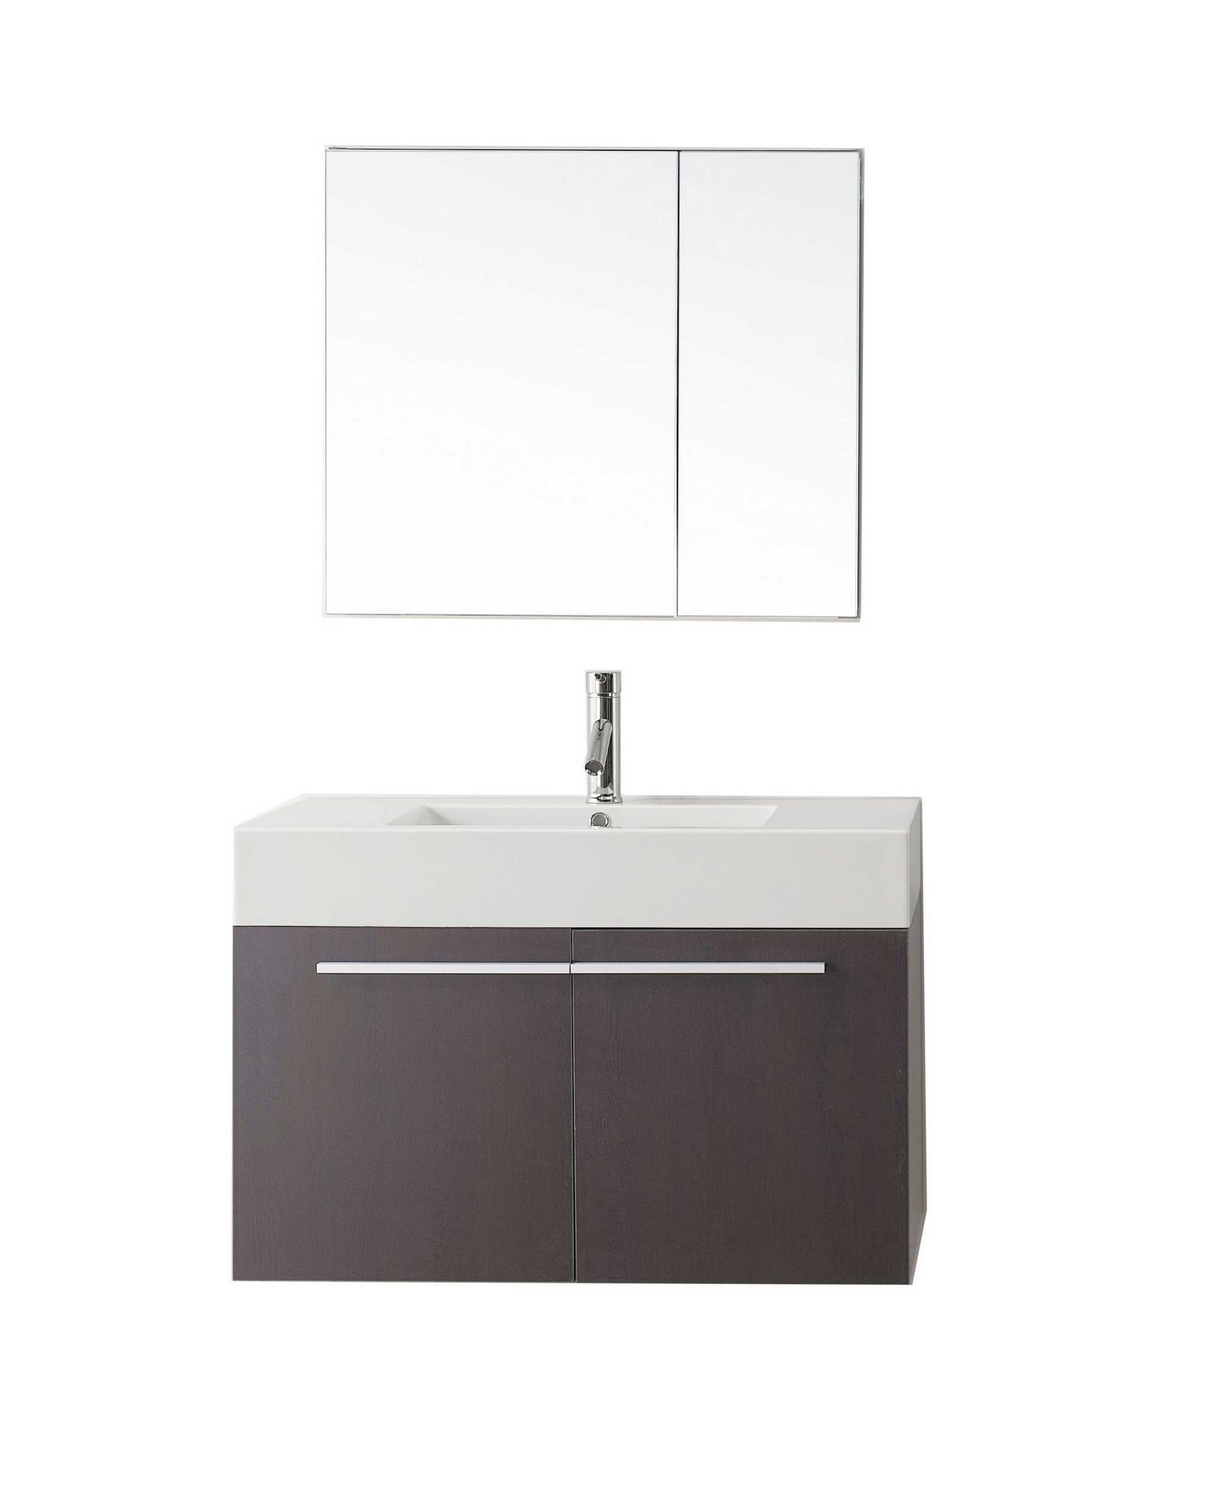 usa midori 36 single bathroom vanity cabinet set in wenge polymarble